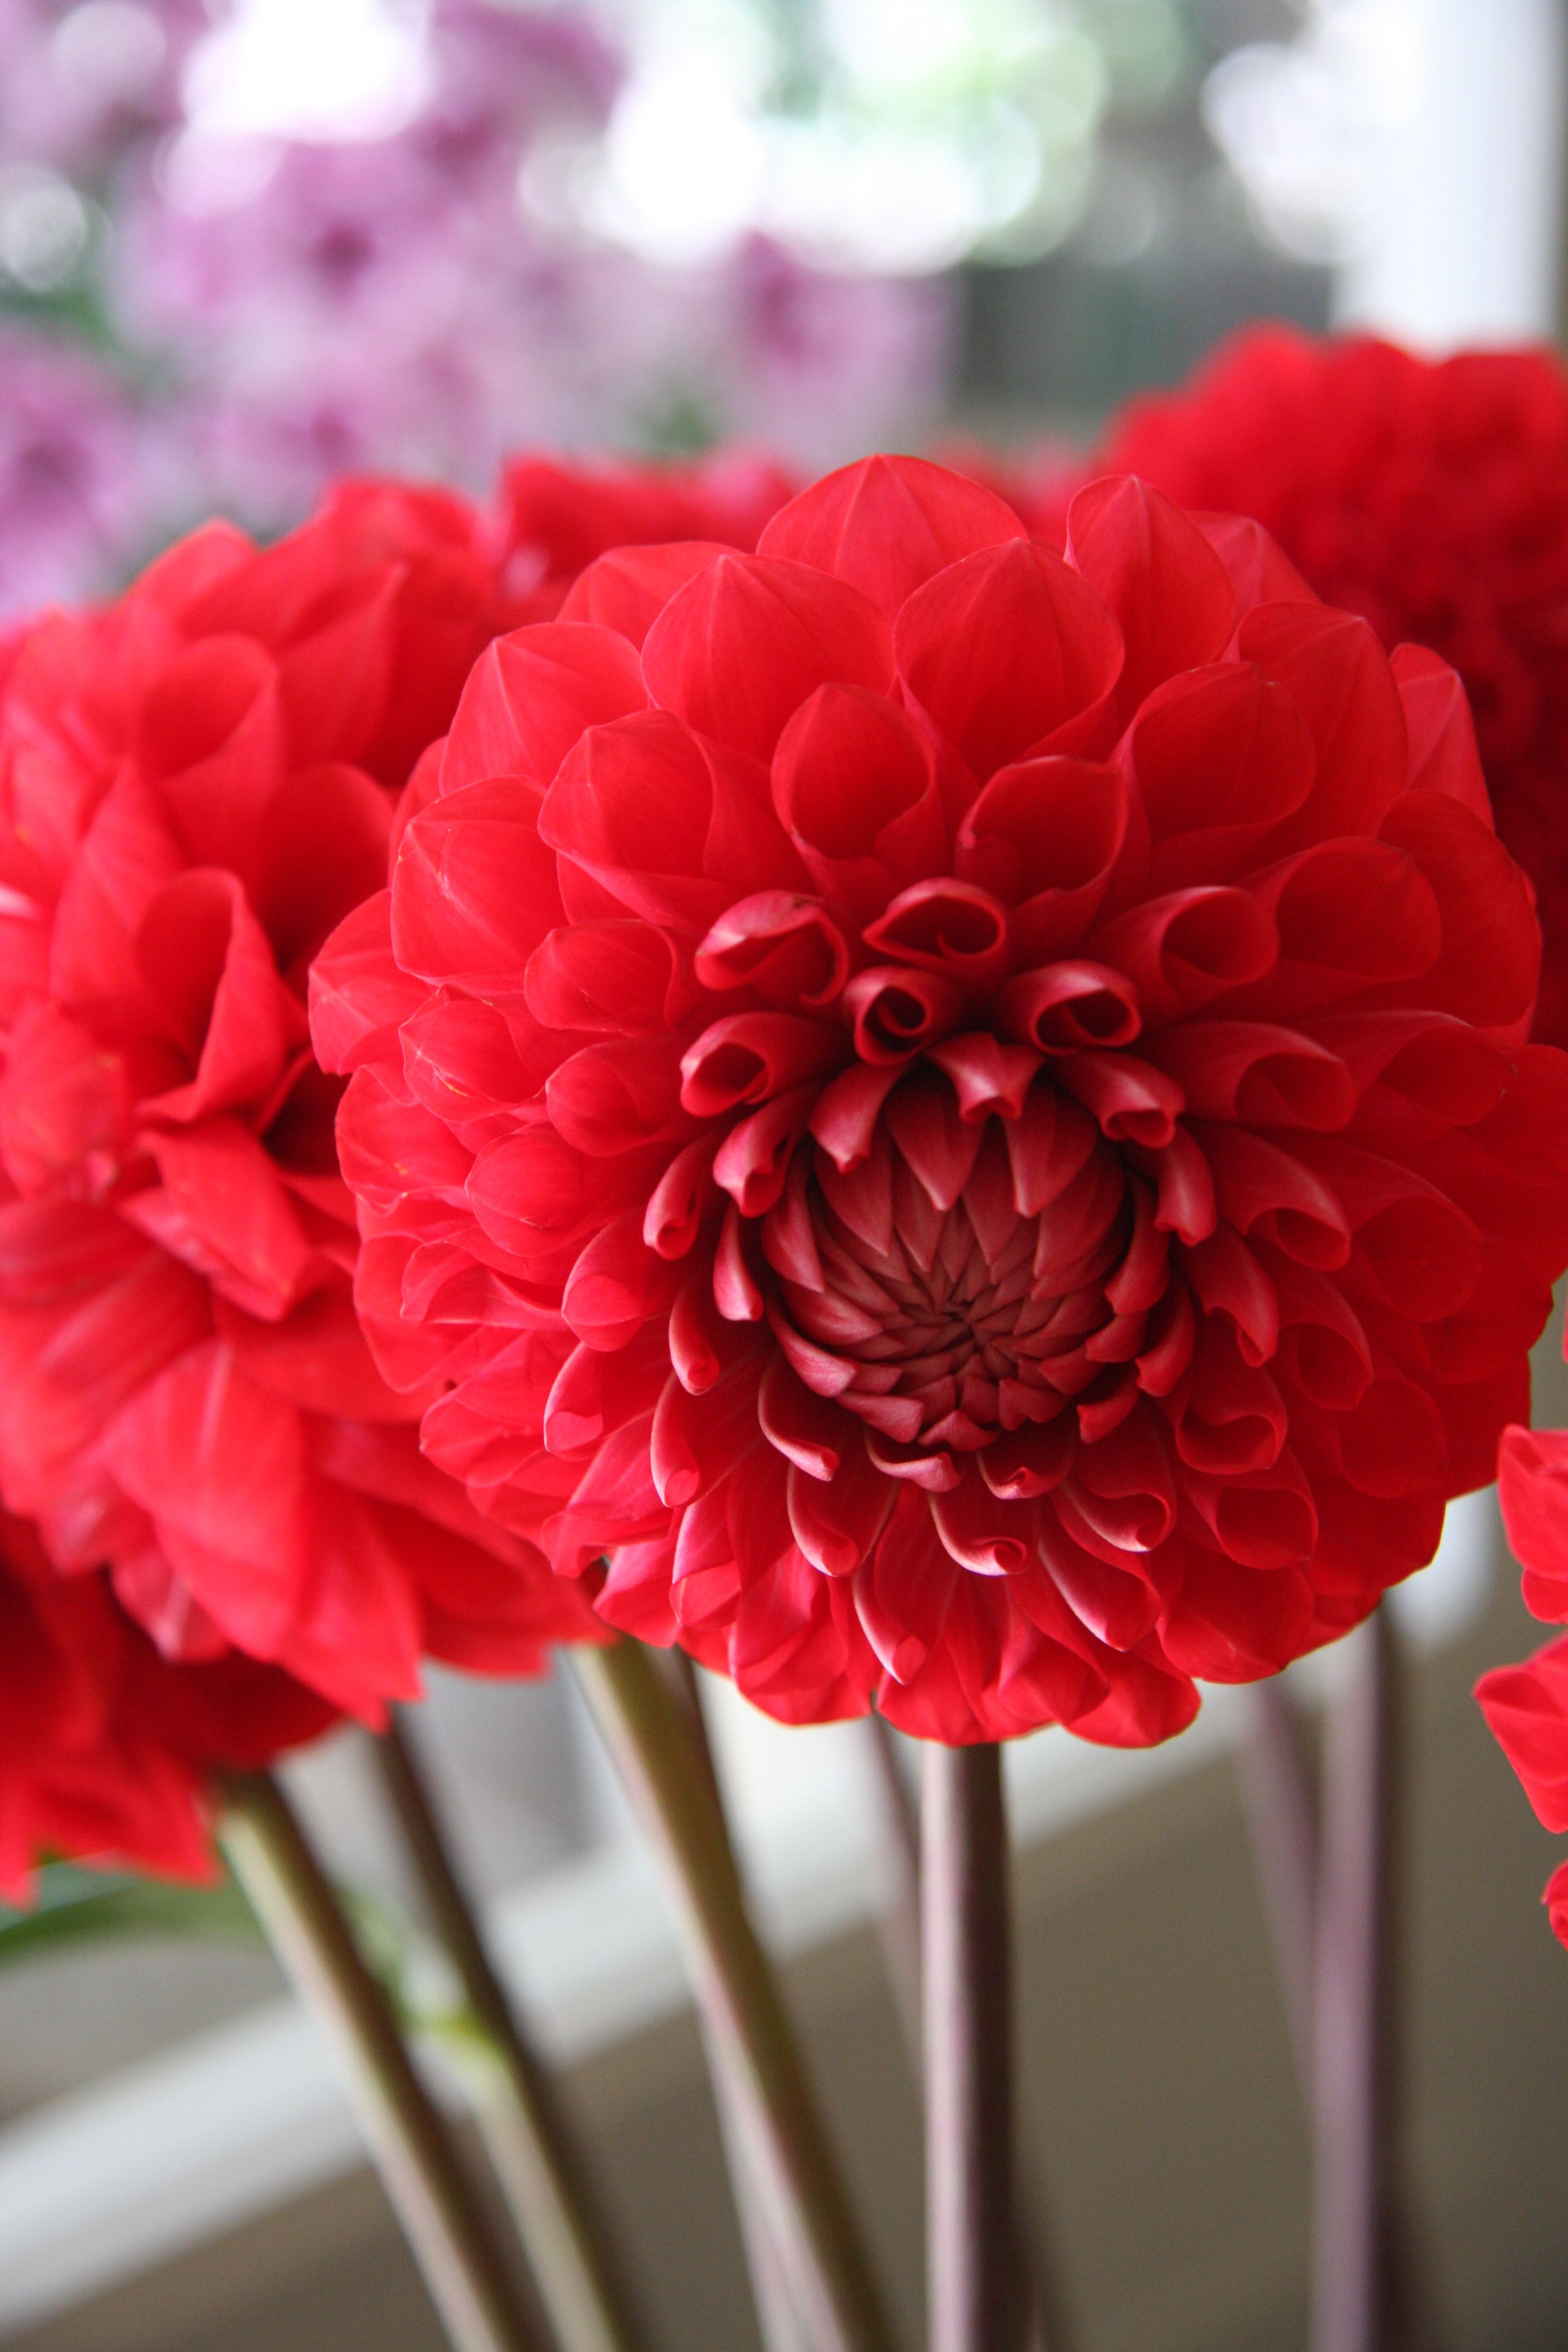 Dahlias Are Pretty For July But A Little On The Higher End Price